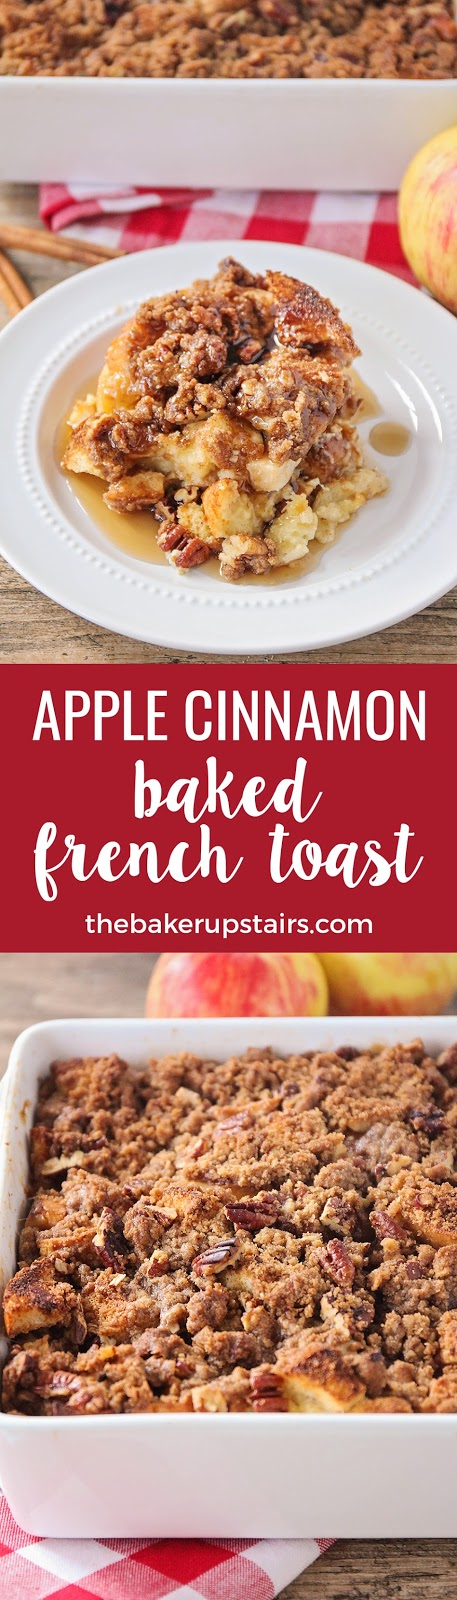 This deliciously sweet apple cinnamon baked french toast is the perfect breakfast for fall!